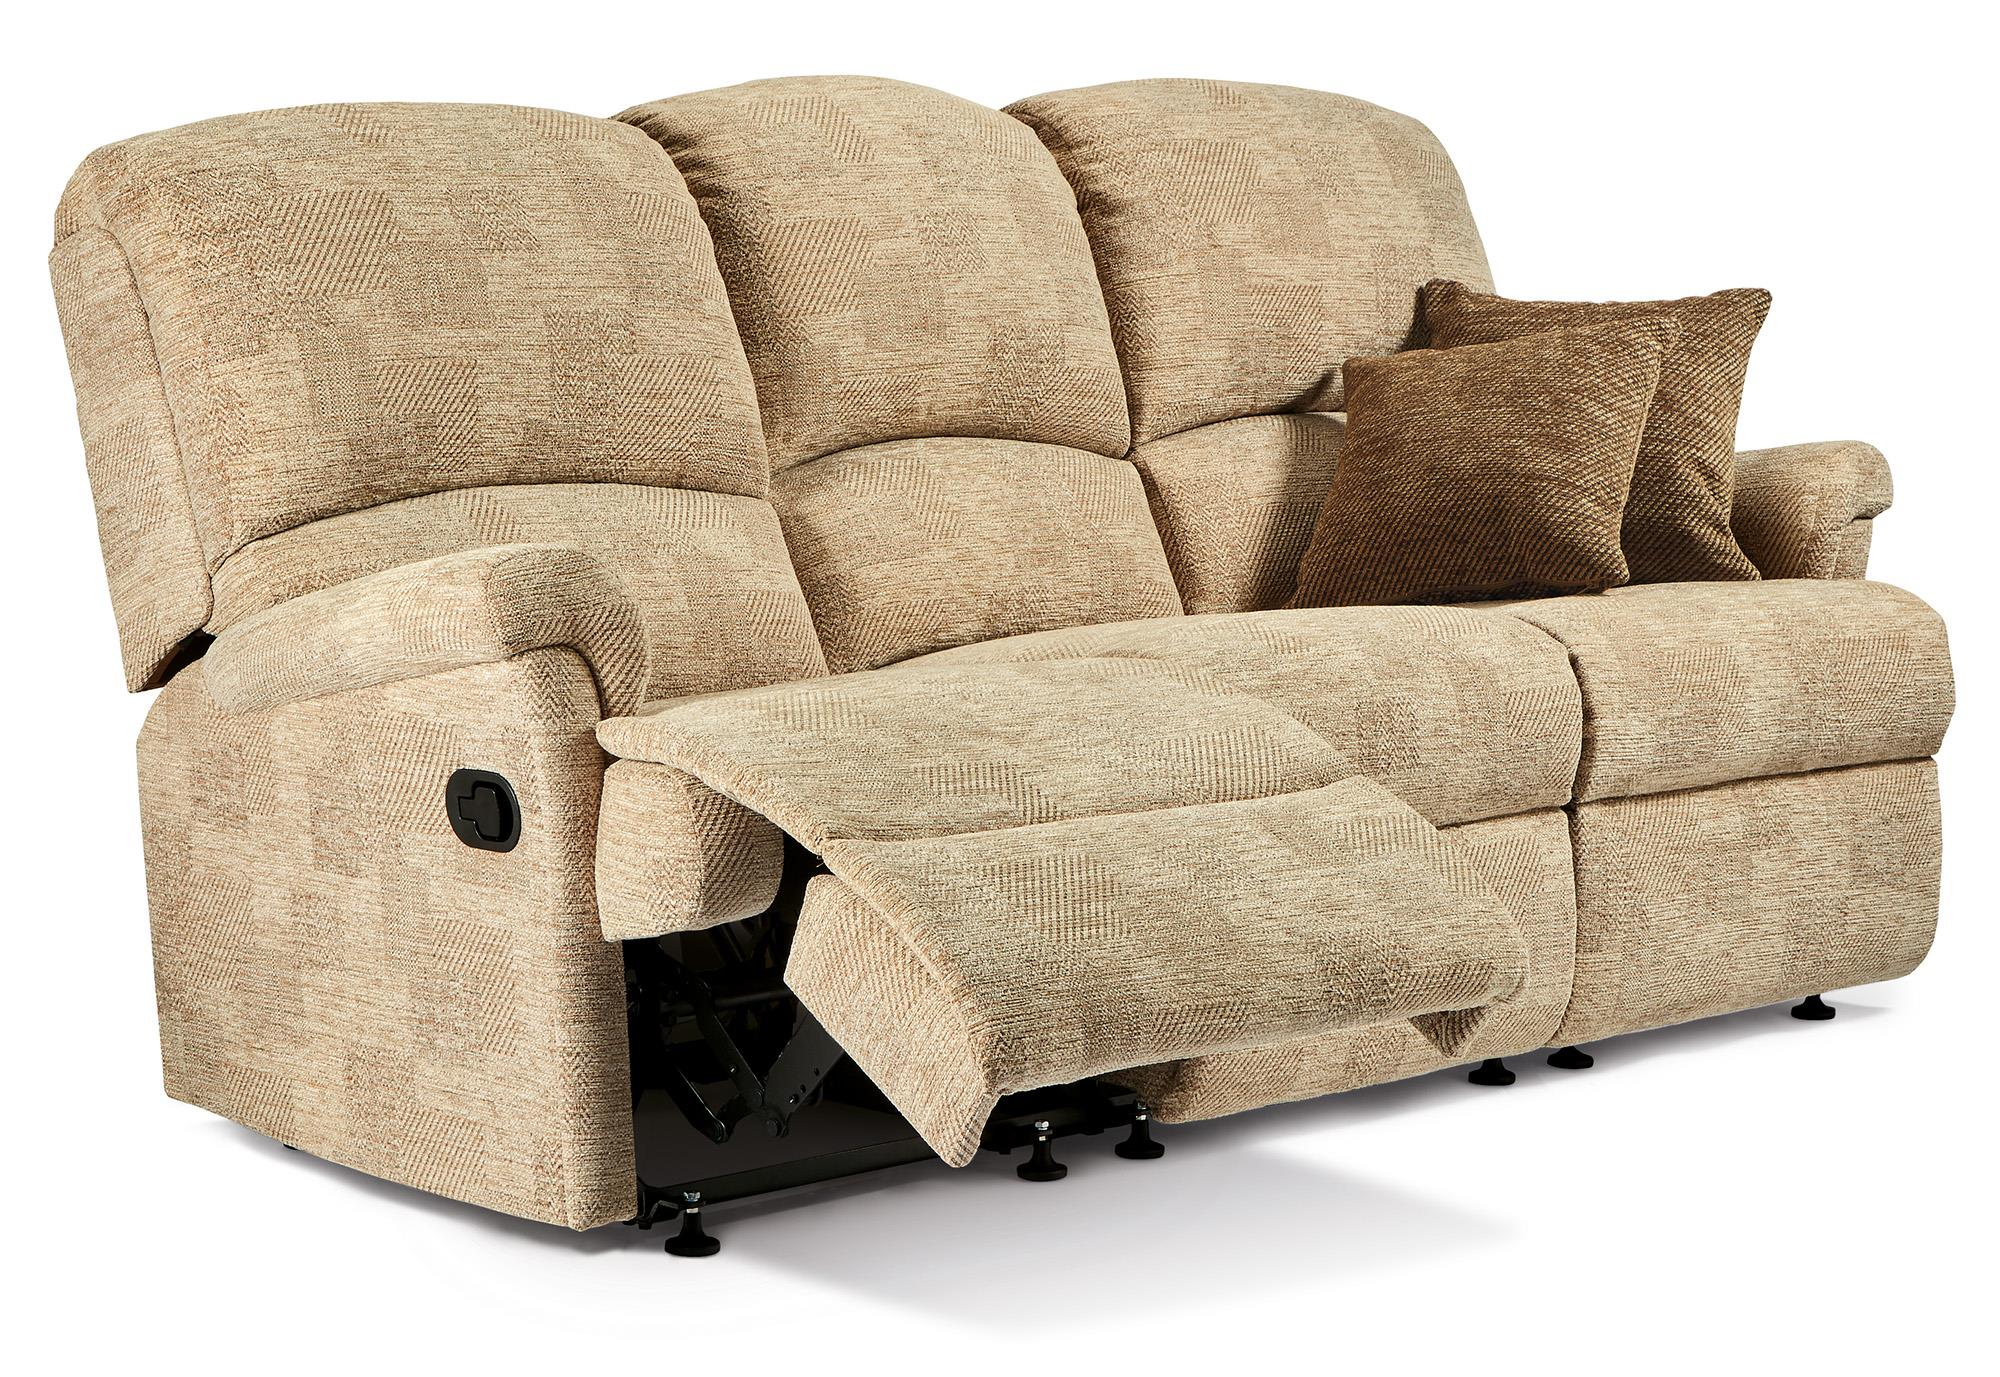 Nevada 3 Str Powered Reclining Settee - by Sherborne